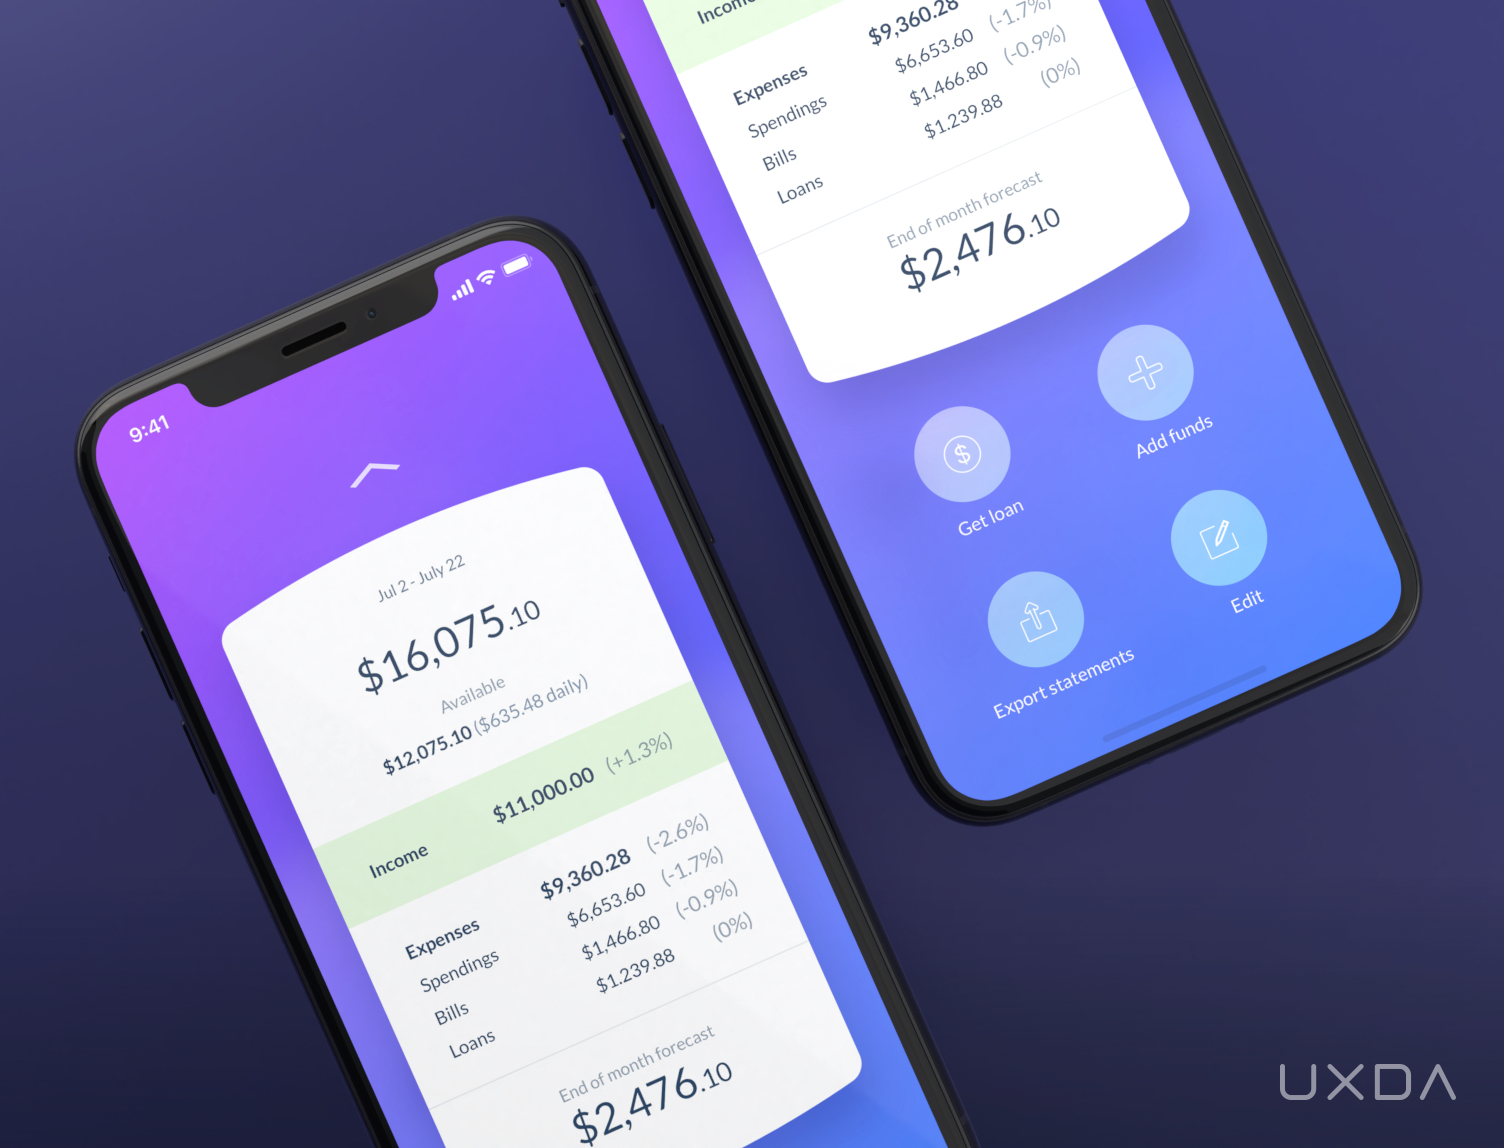 ux-case-study-how-to-create-a-mobile-banking-super-app-s-insights-at-a-glance-3.jpg